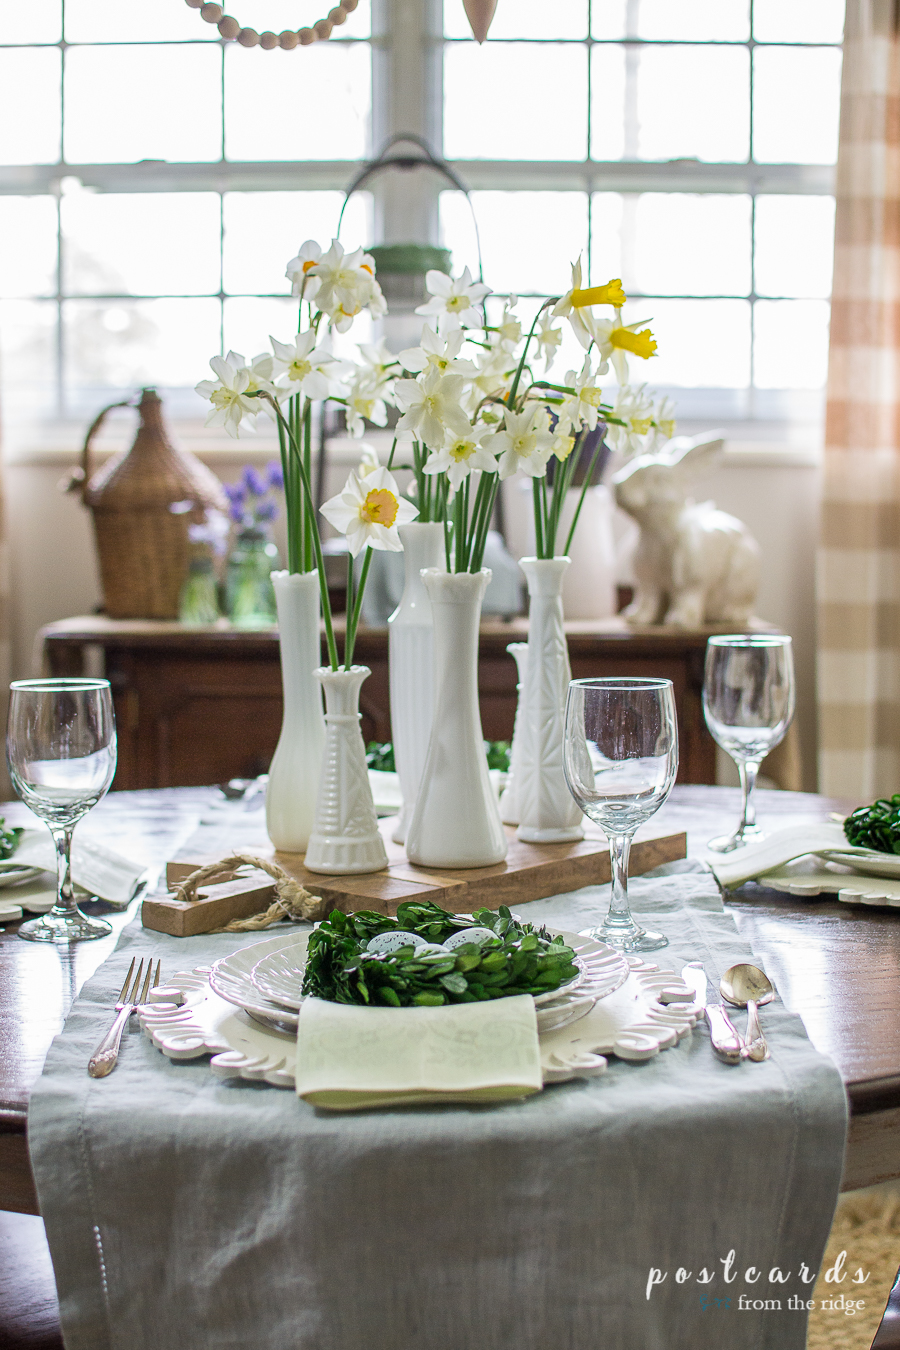 Spring Tablescape And Decorating Ideas. Vintage Milk Glass Vases On With  Narcissus On A Spring Table